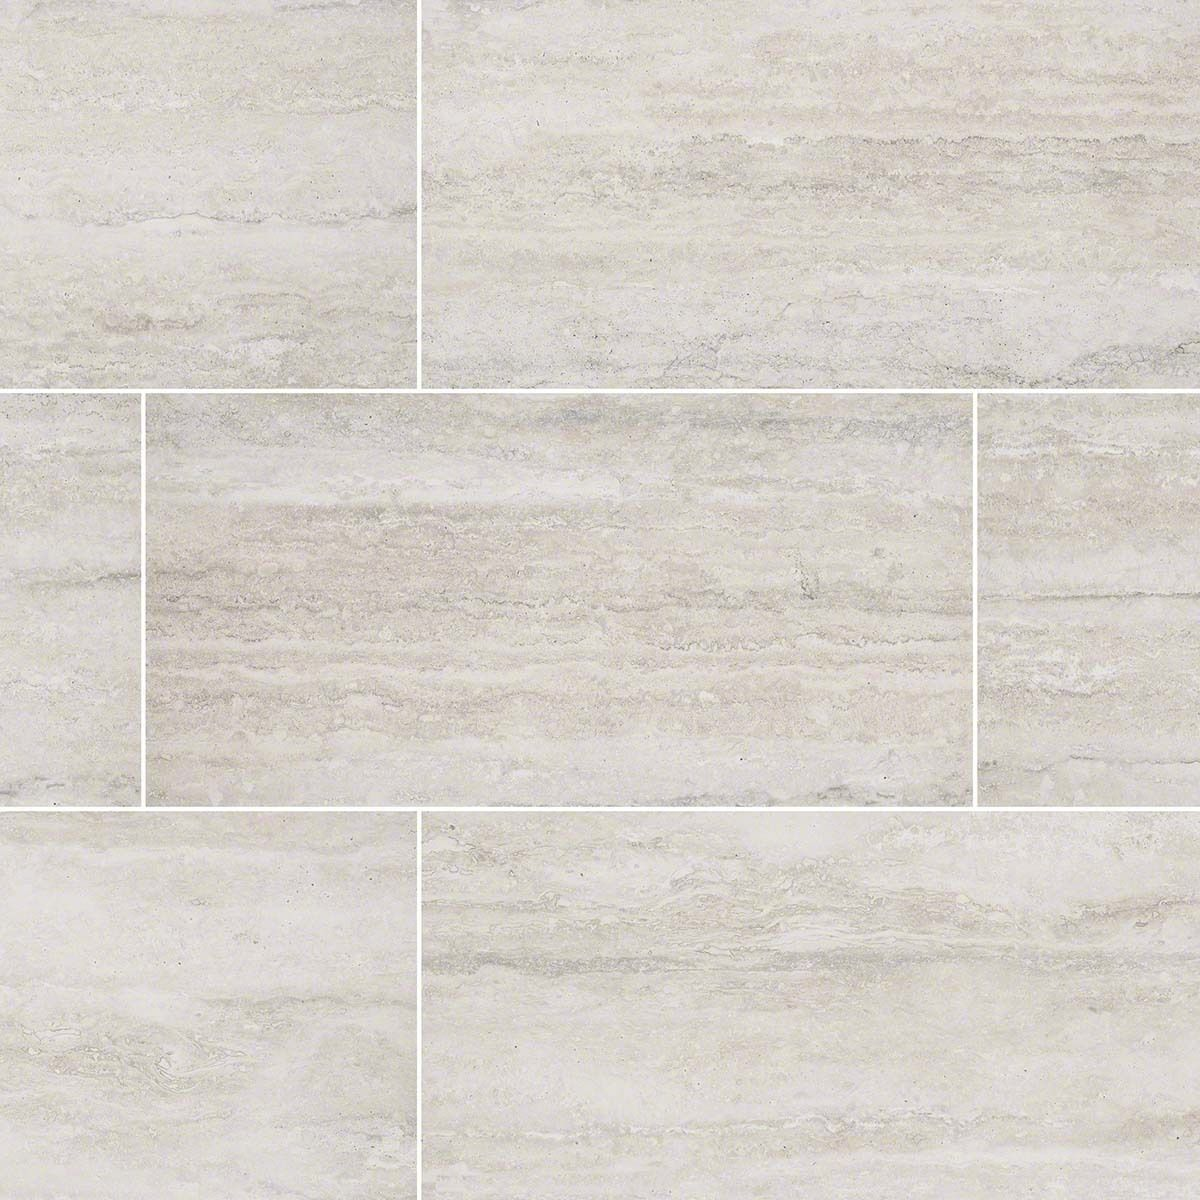 Veneto Collection White Matte Porcelain 12x24 Tiles Direct Store White Porcelain Tile Tile Floor Bathroom Countertops